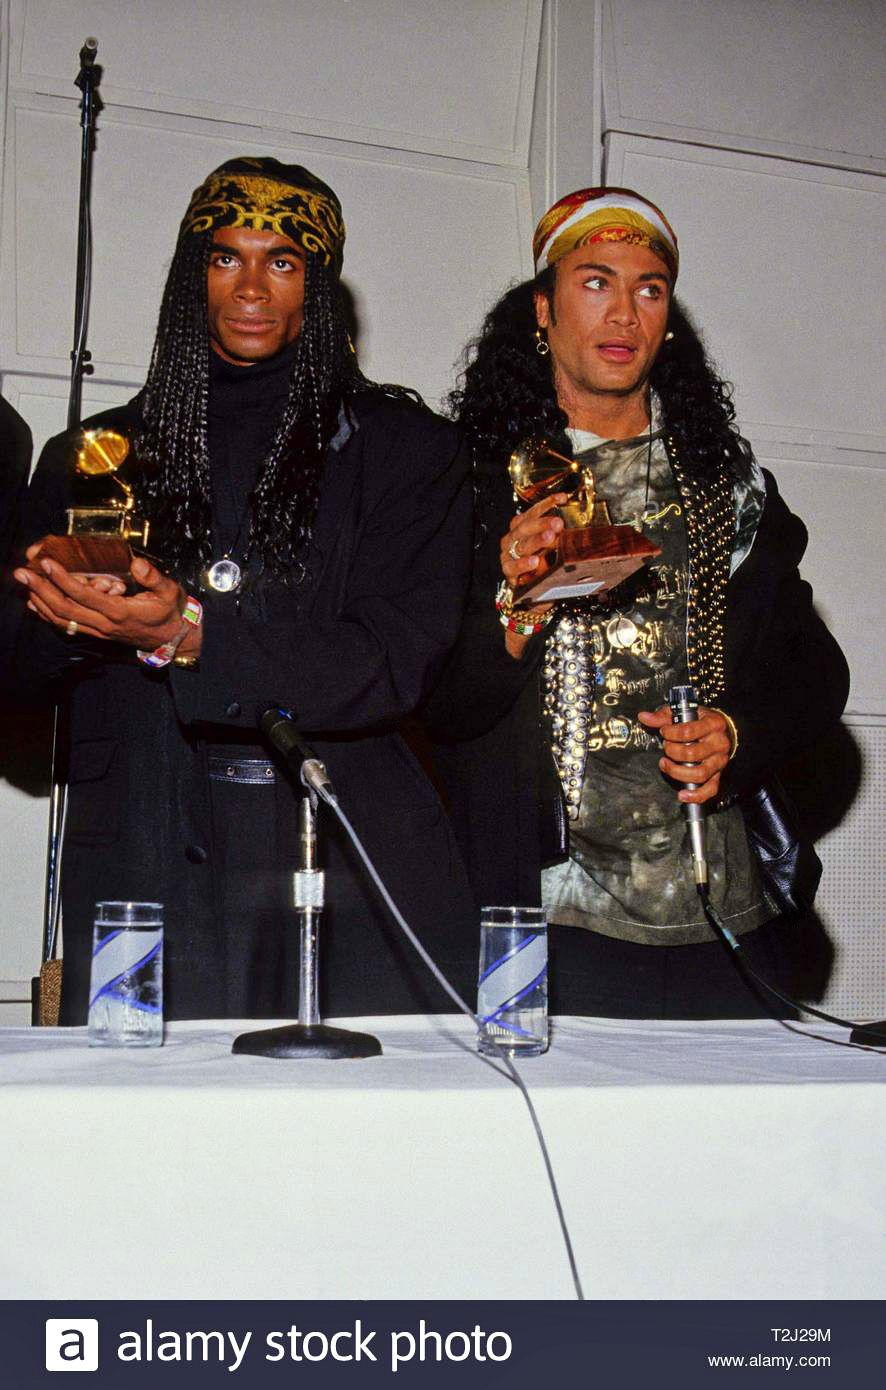 November 20, 1990 Rob Pilatus and Fab Morvan of Milli Vanilli at a Press Conference presenting their Grammy to the actual singers at Ocean Way Recording Studios in Hollywood, California.